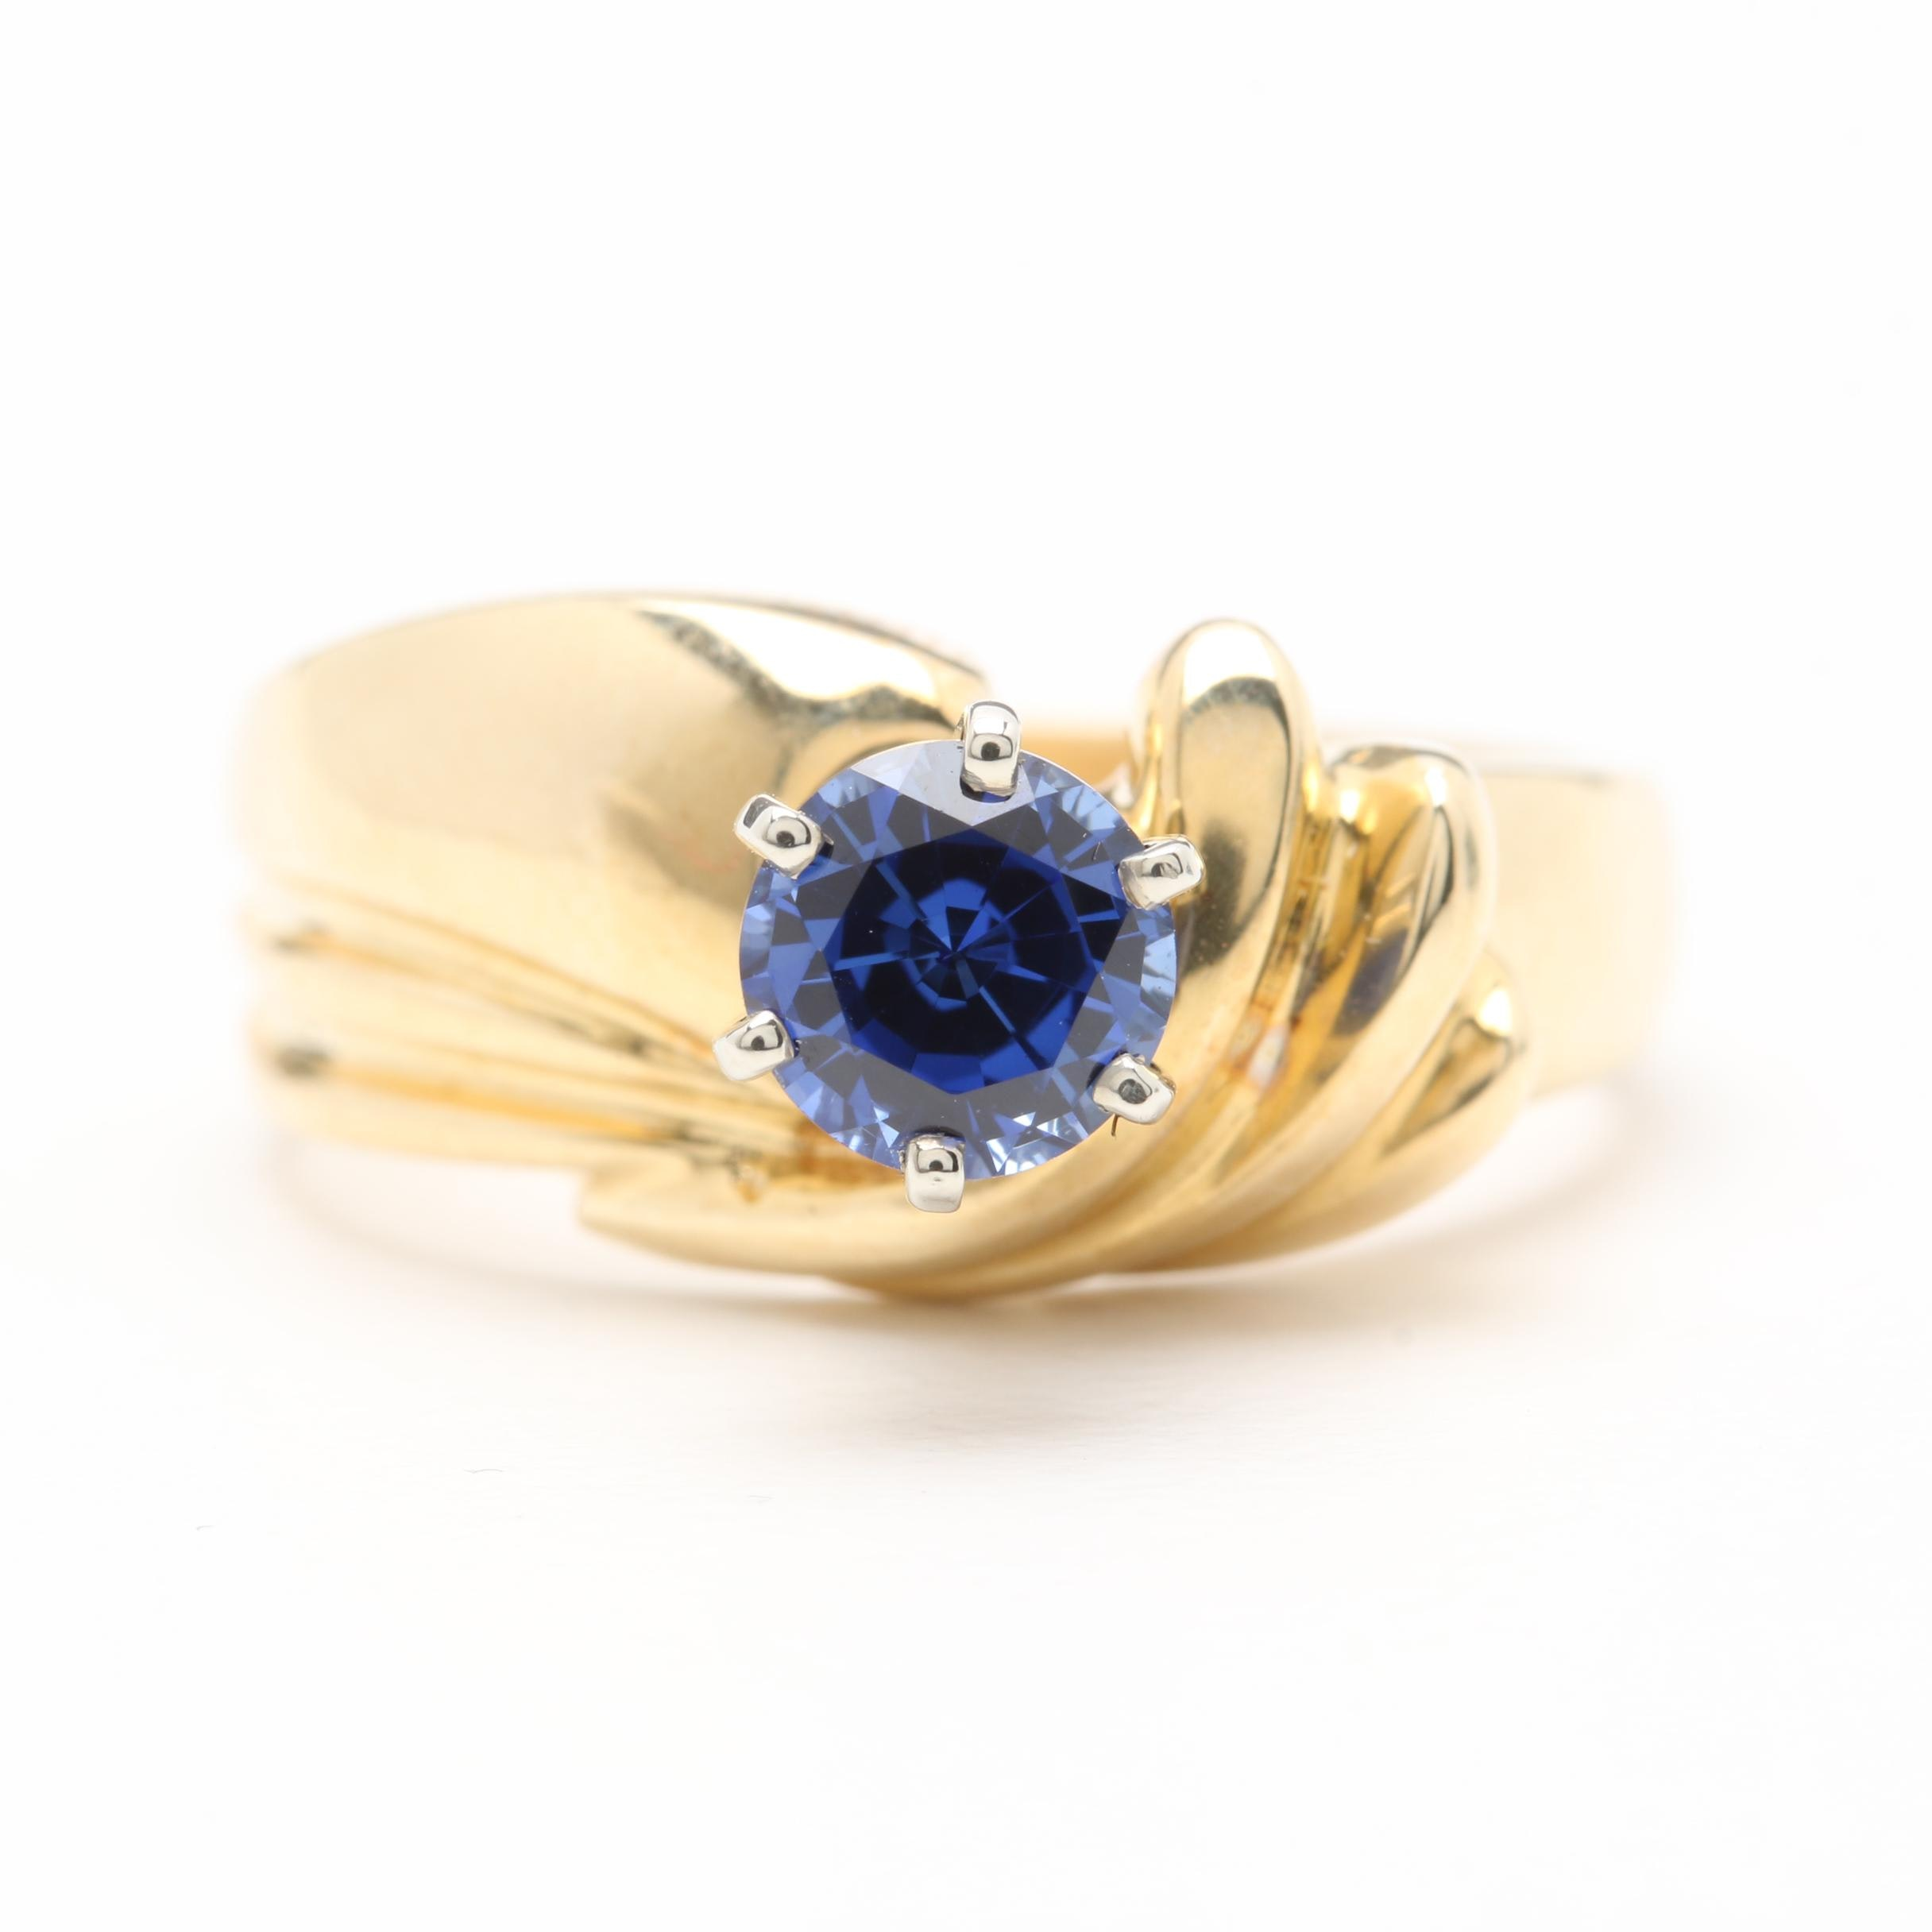 14K Yellow Gold Synthetic Blue Sapphire Ring with White Gold Accents